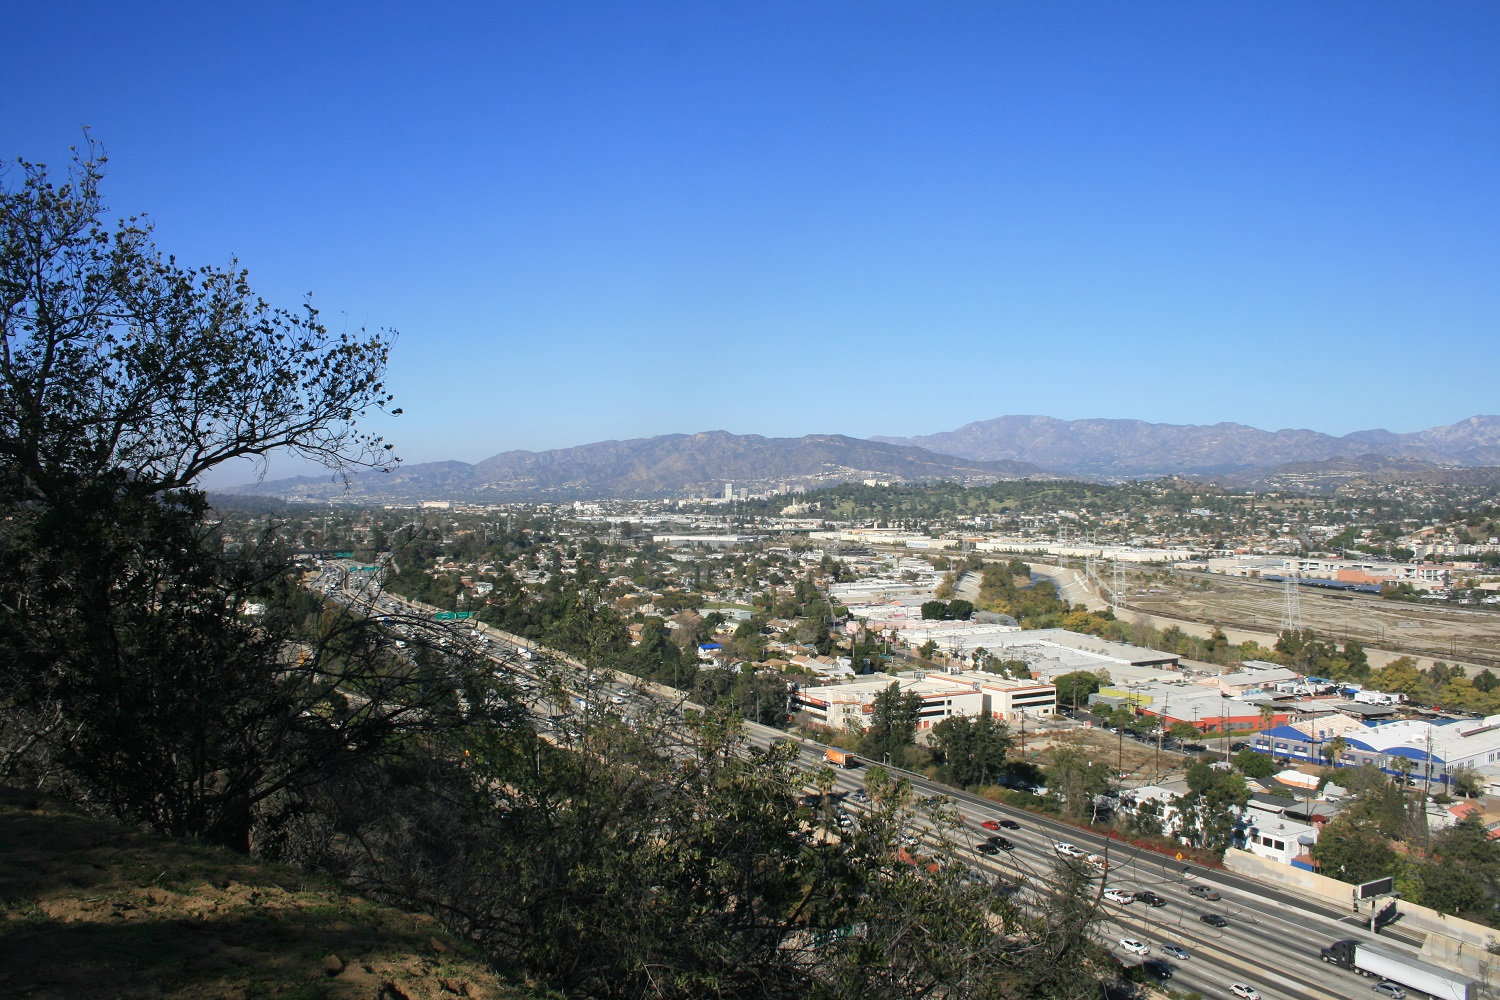 View from Elysian Park, Los Angeles, CA